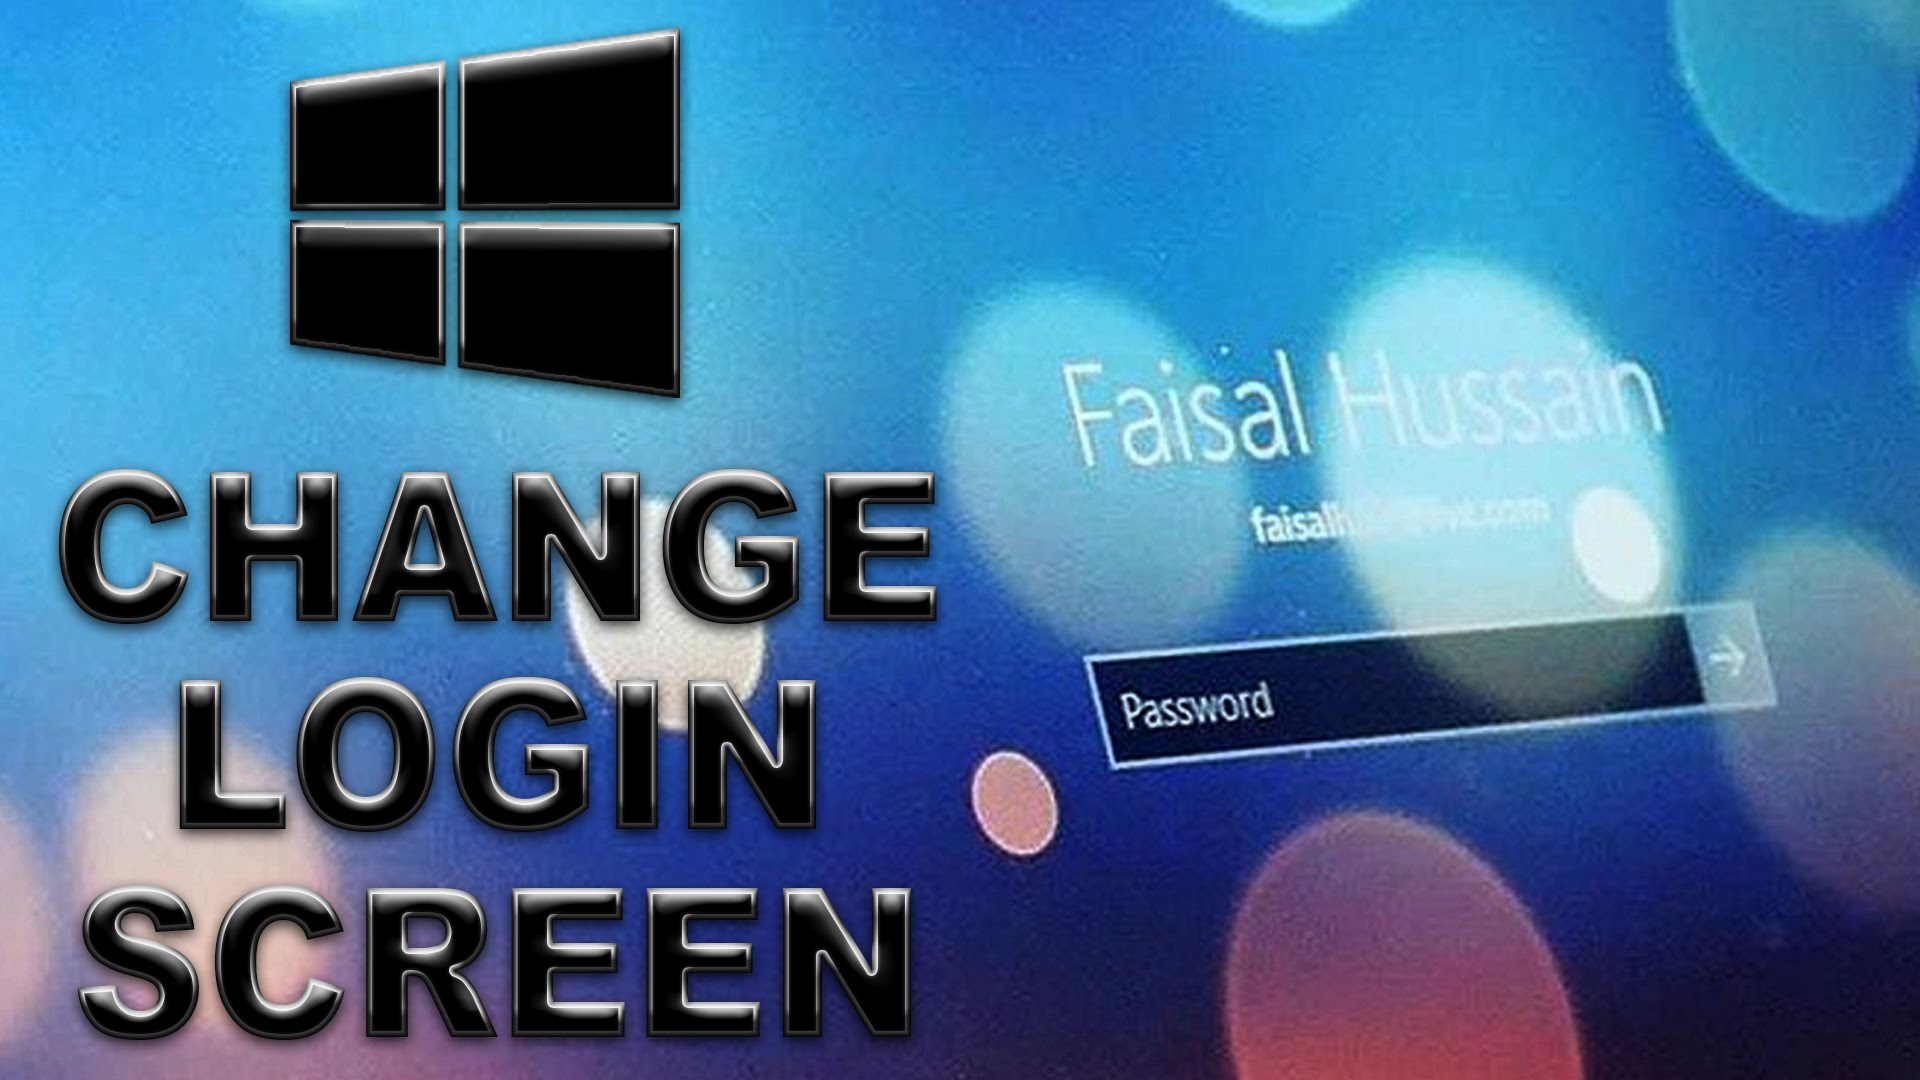 How To Change Login Screen Wallpaper